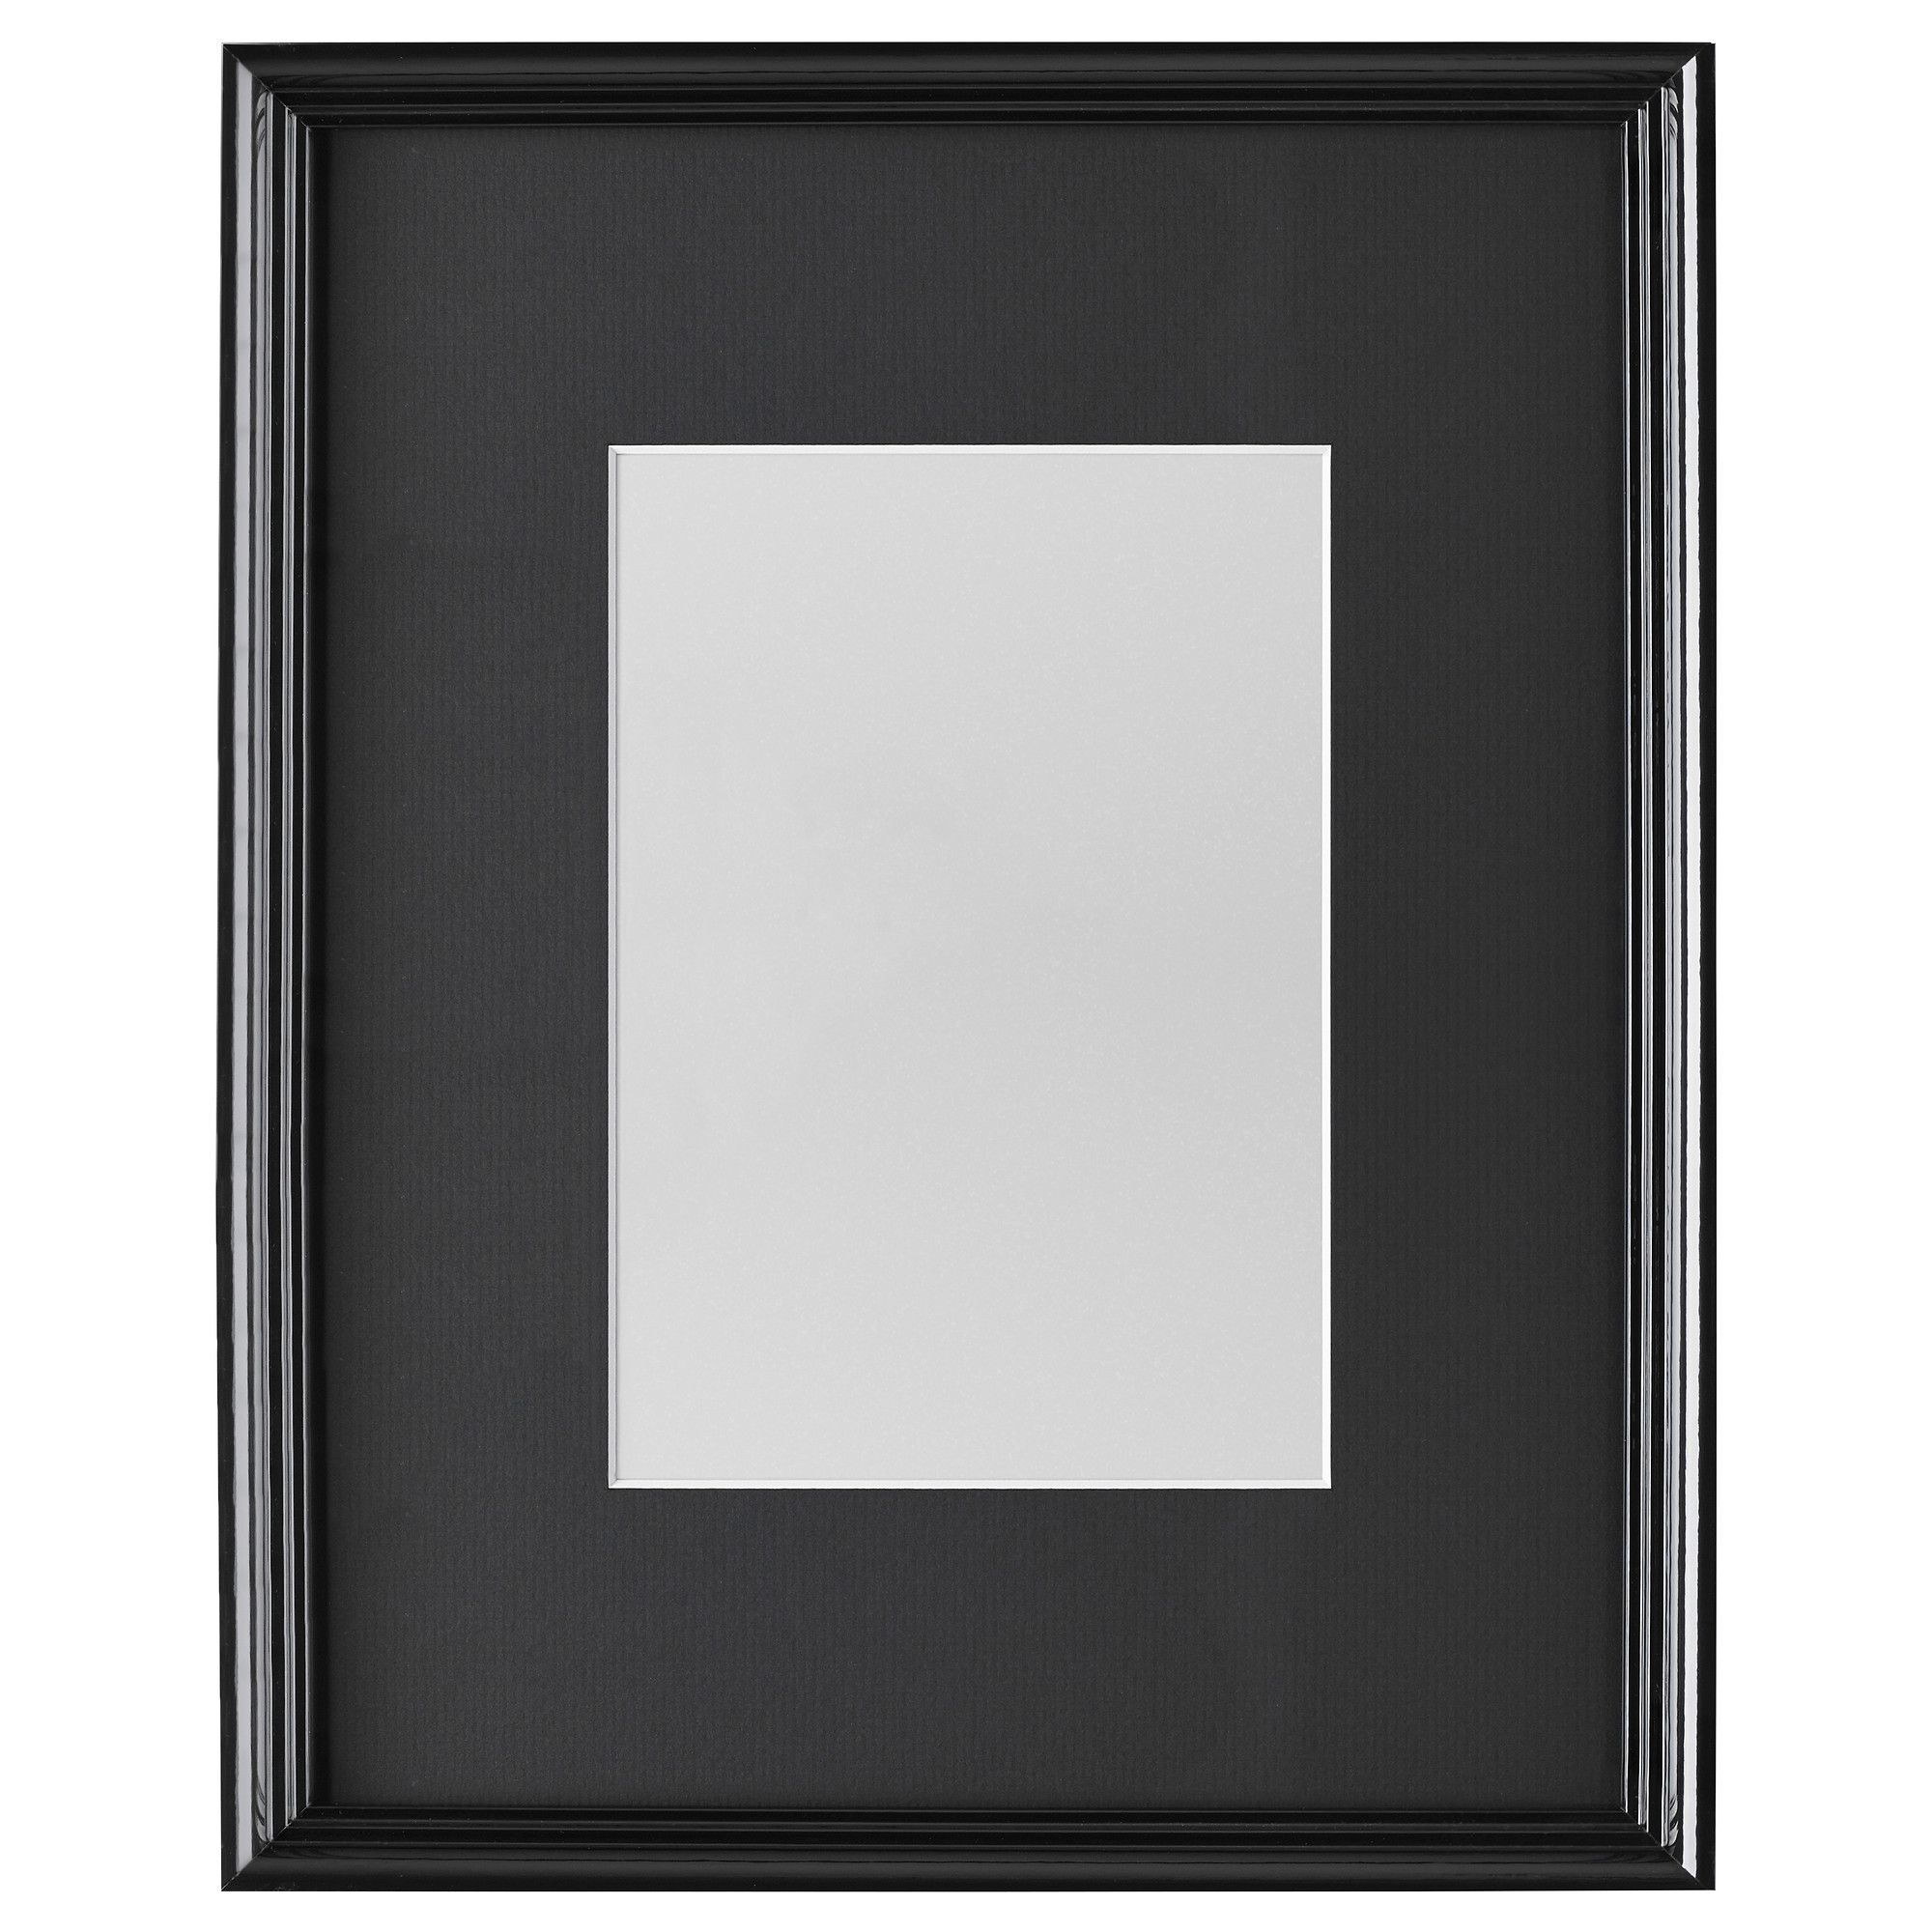 Strip black white picture frame